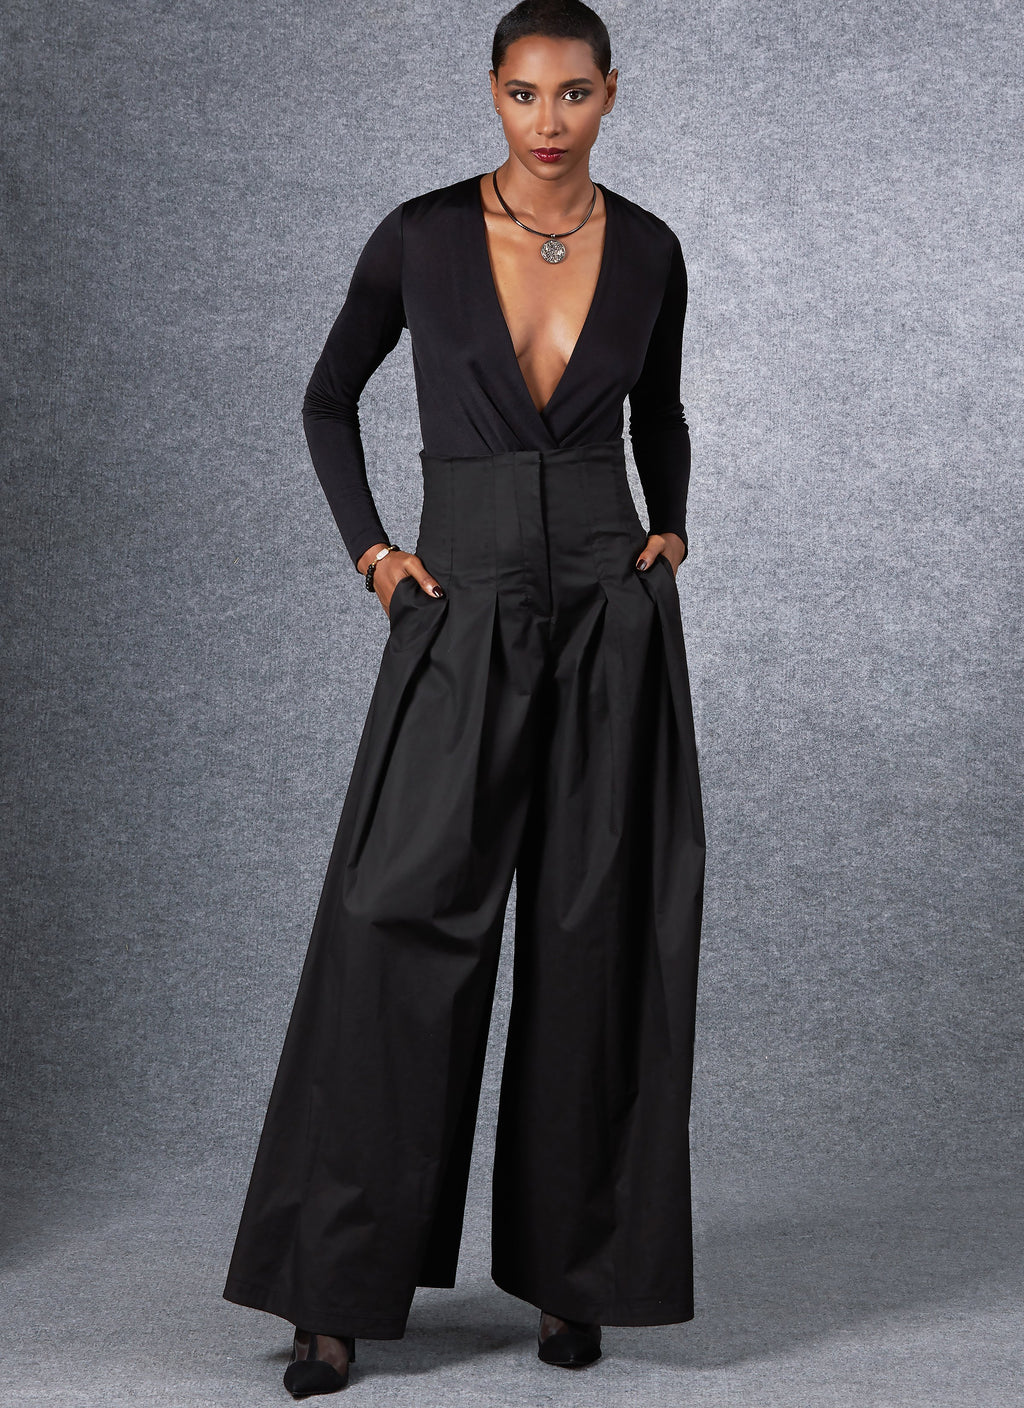 Vogue Sewing Pattern 1661 Pants